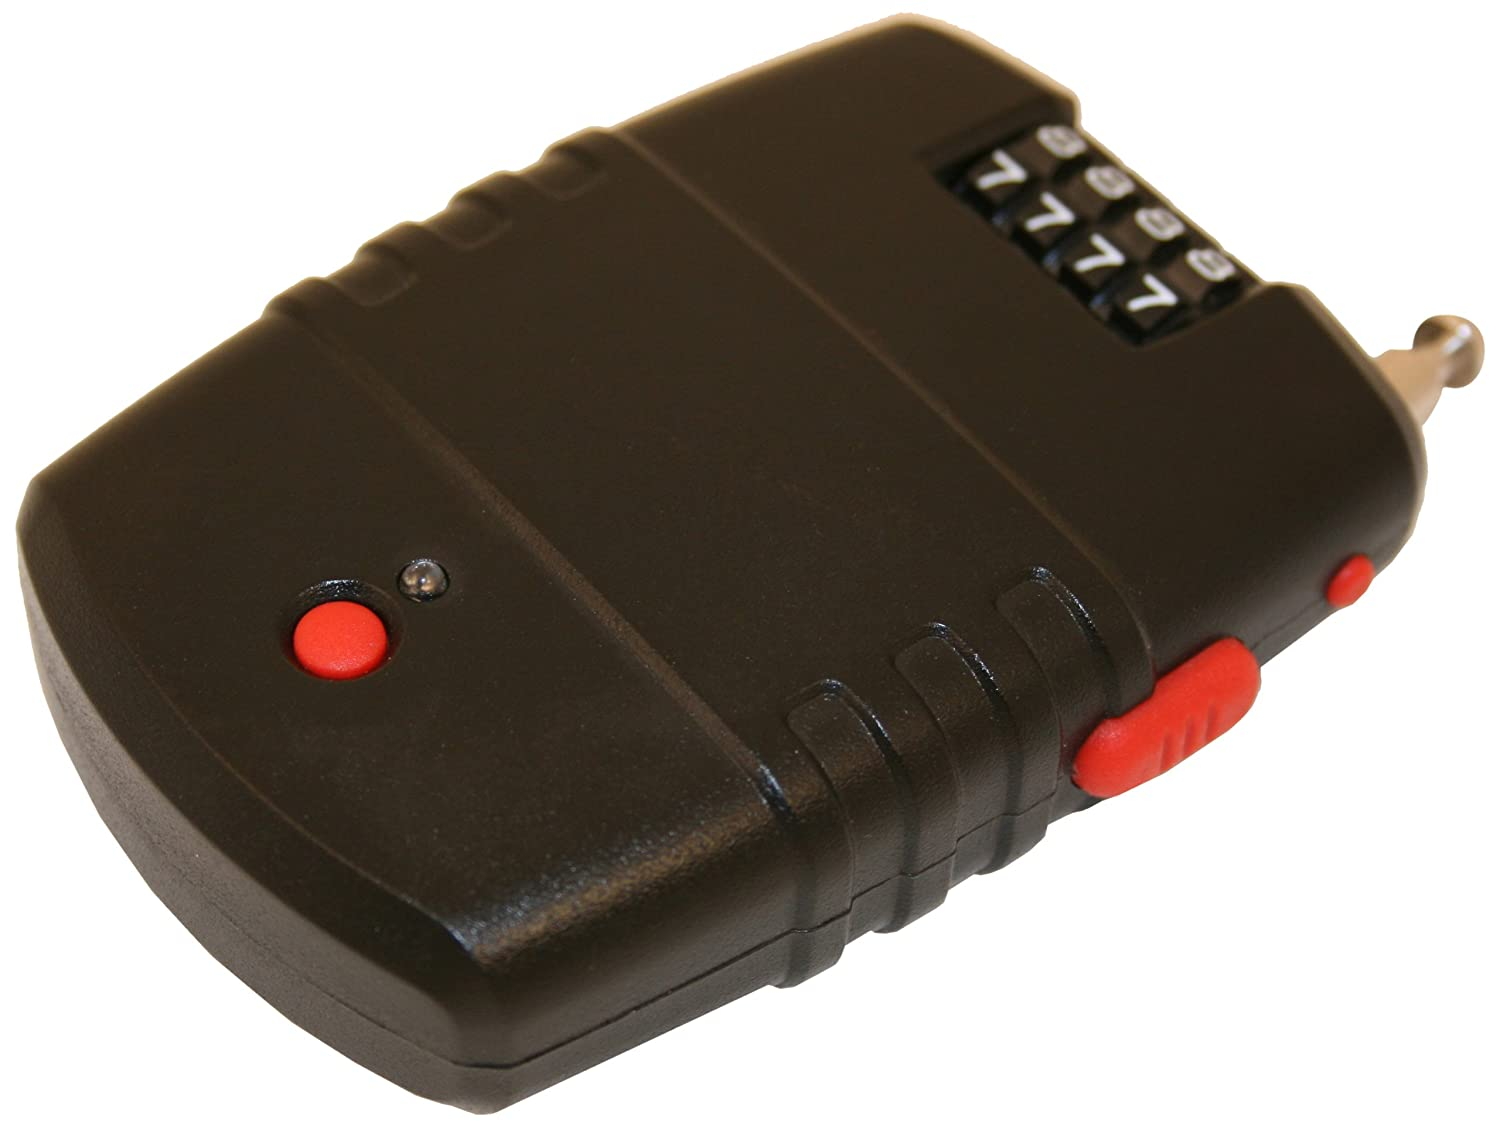 FJM Security SX-776 Cable Lock Alarm with Piercing 120 Decibel Siren